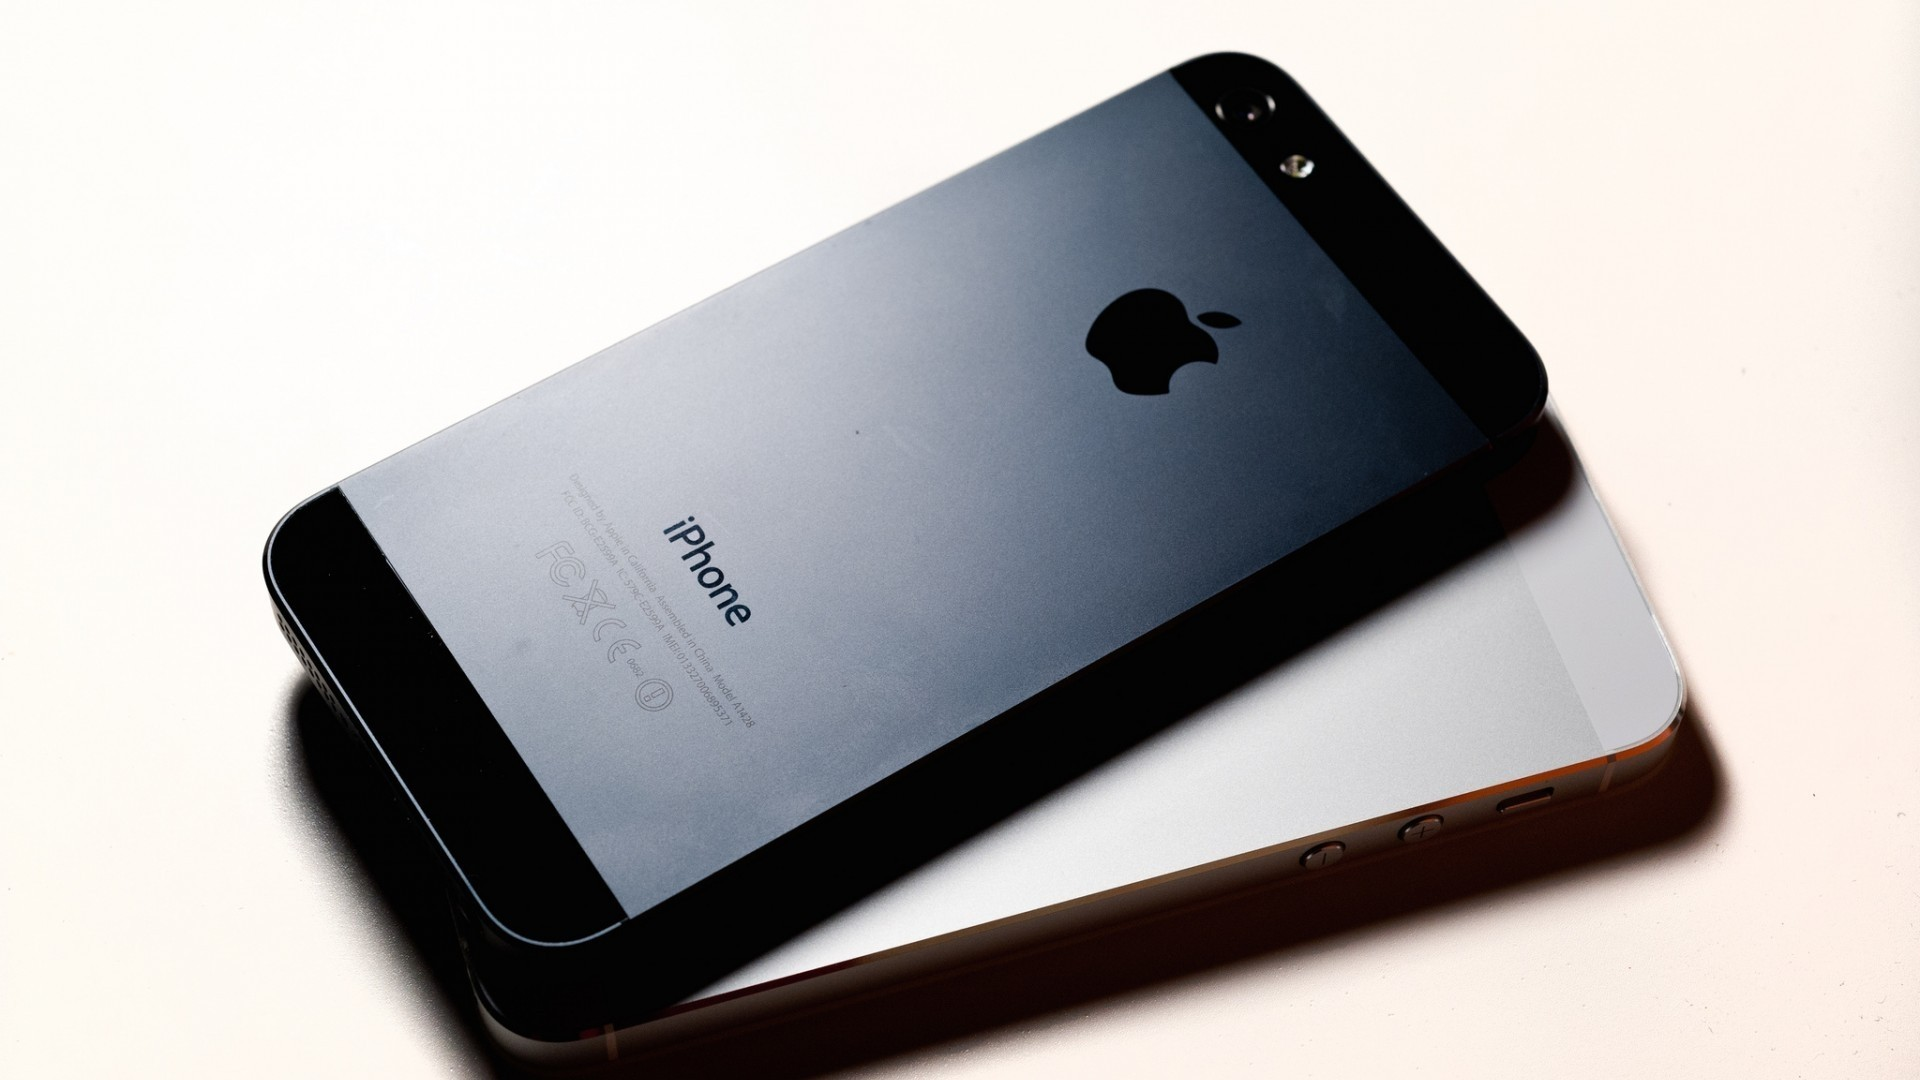 1920x1080 iPhone 5 Rear 1920 x 1080 HDTV 1080p